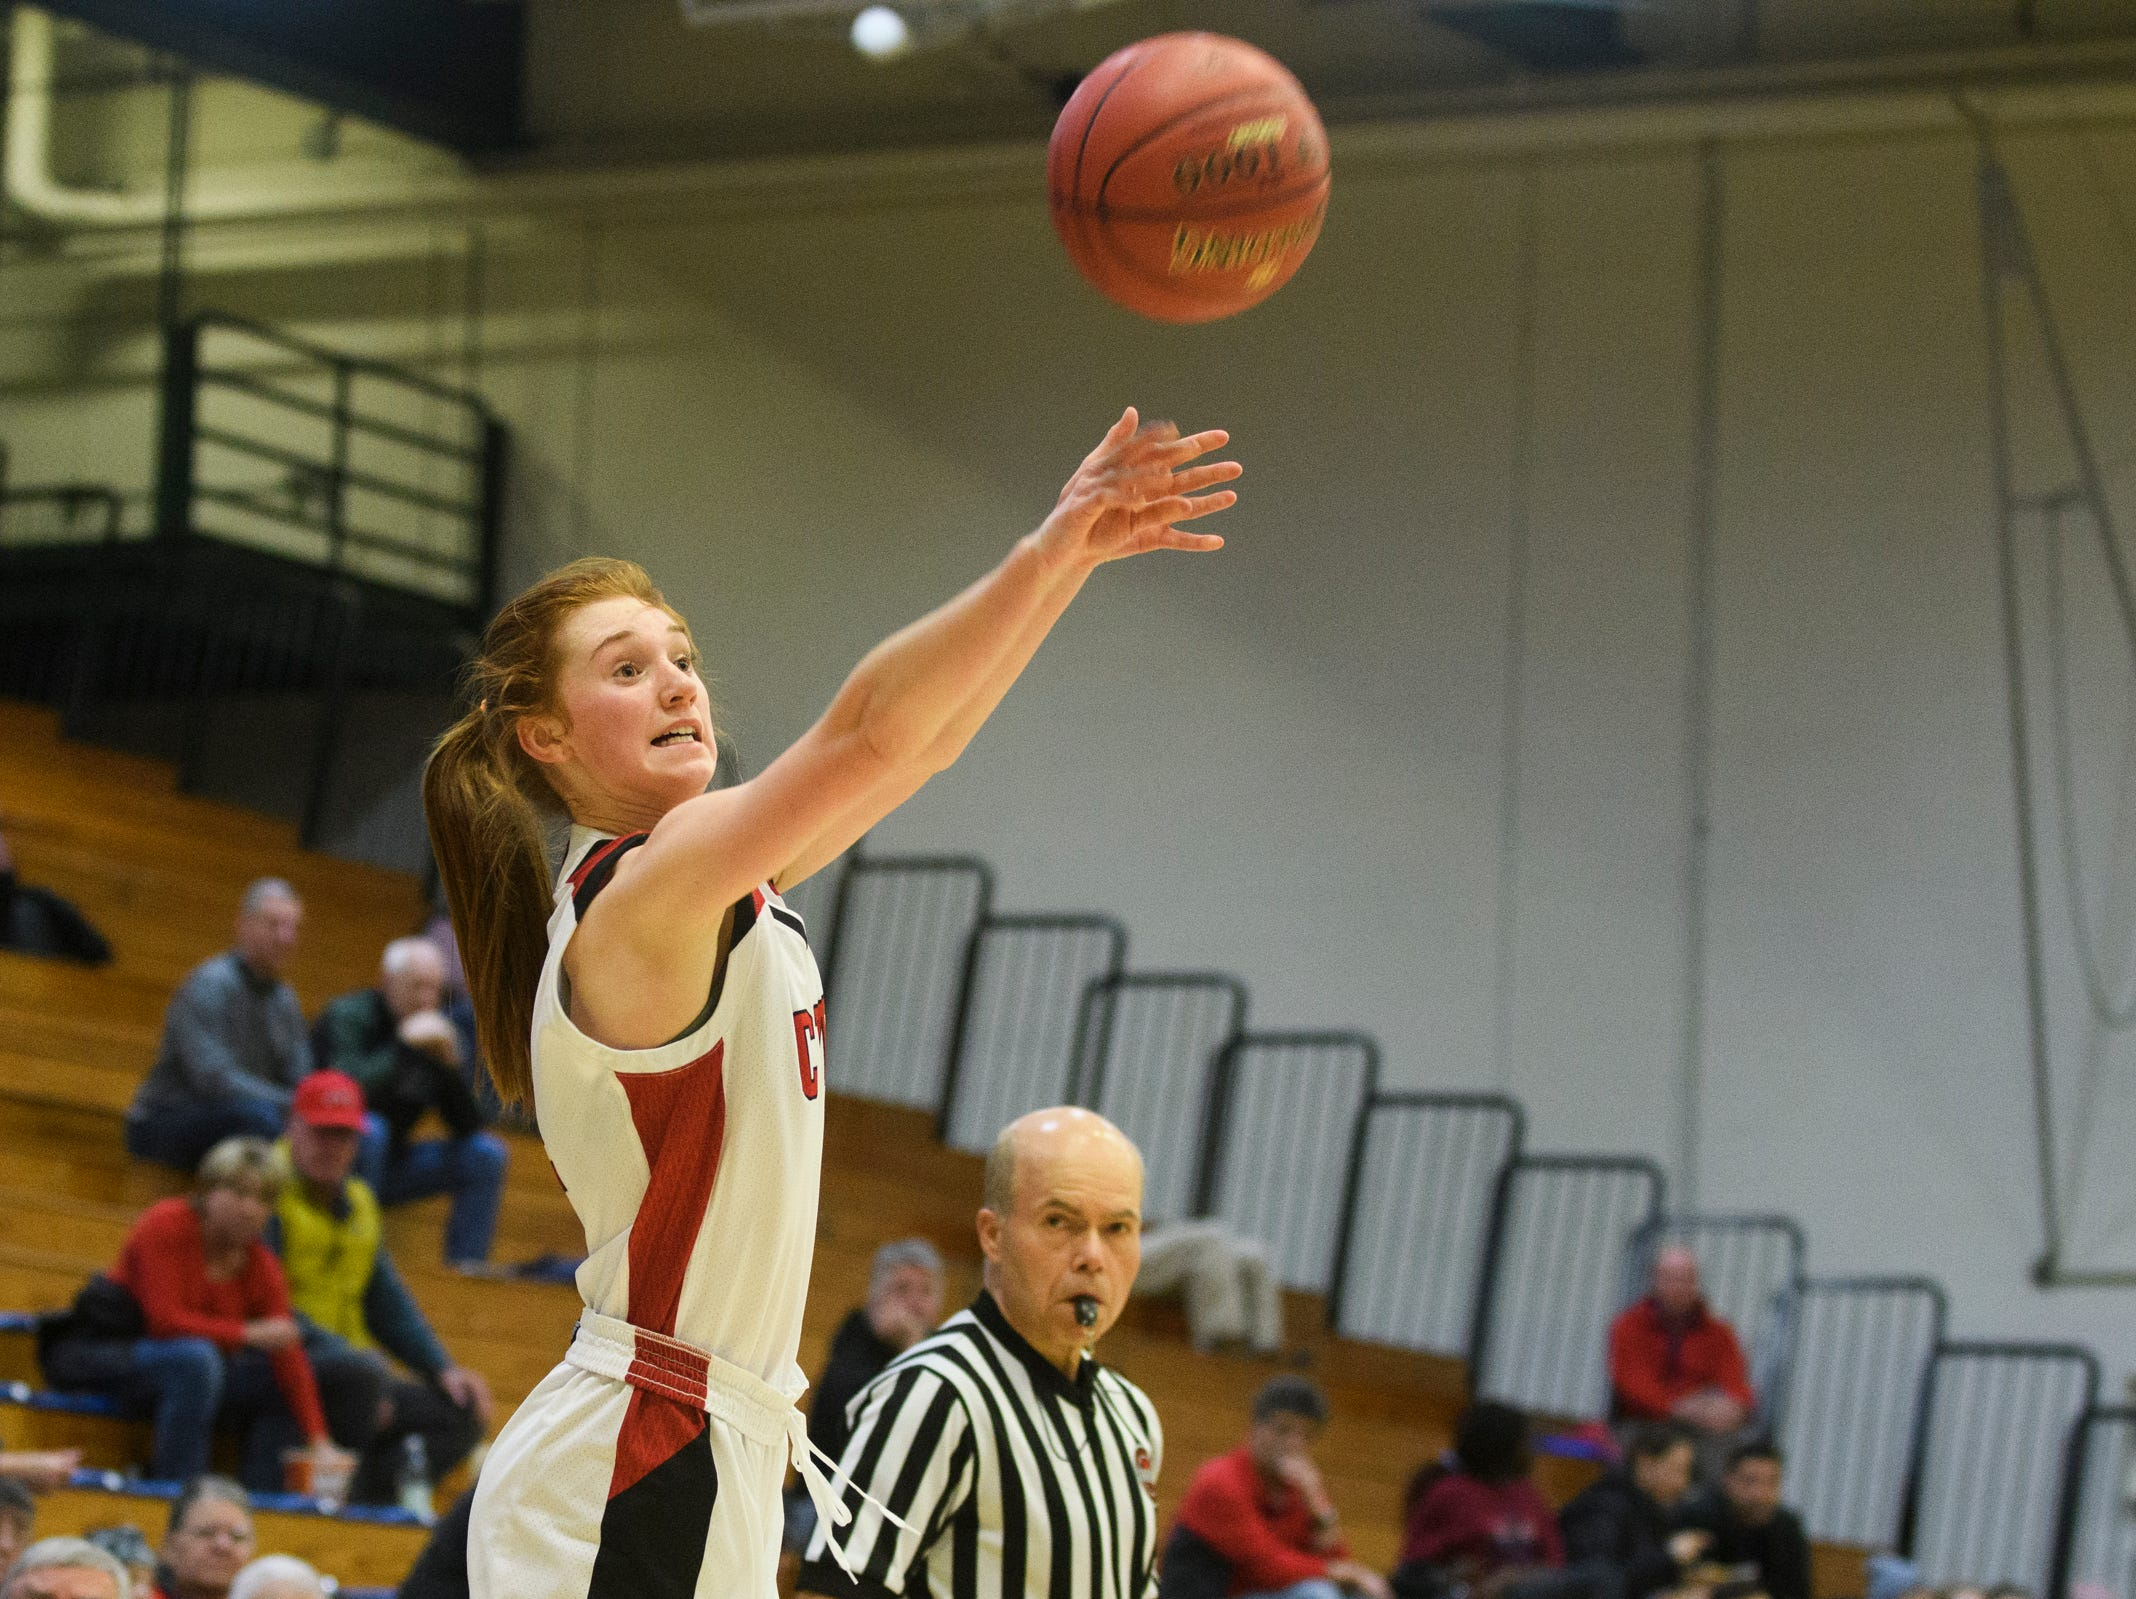 CVU's Catherine Gilwee (4) shoots a three pointer during the girls semifinal basketball game between the Rice Green Knights and the Champlain Valley Union Redhawks at Patrick Gym on Wednesday nigh March 6, 2019 in Burlington, Vermont.